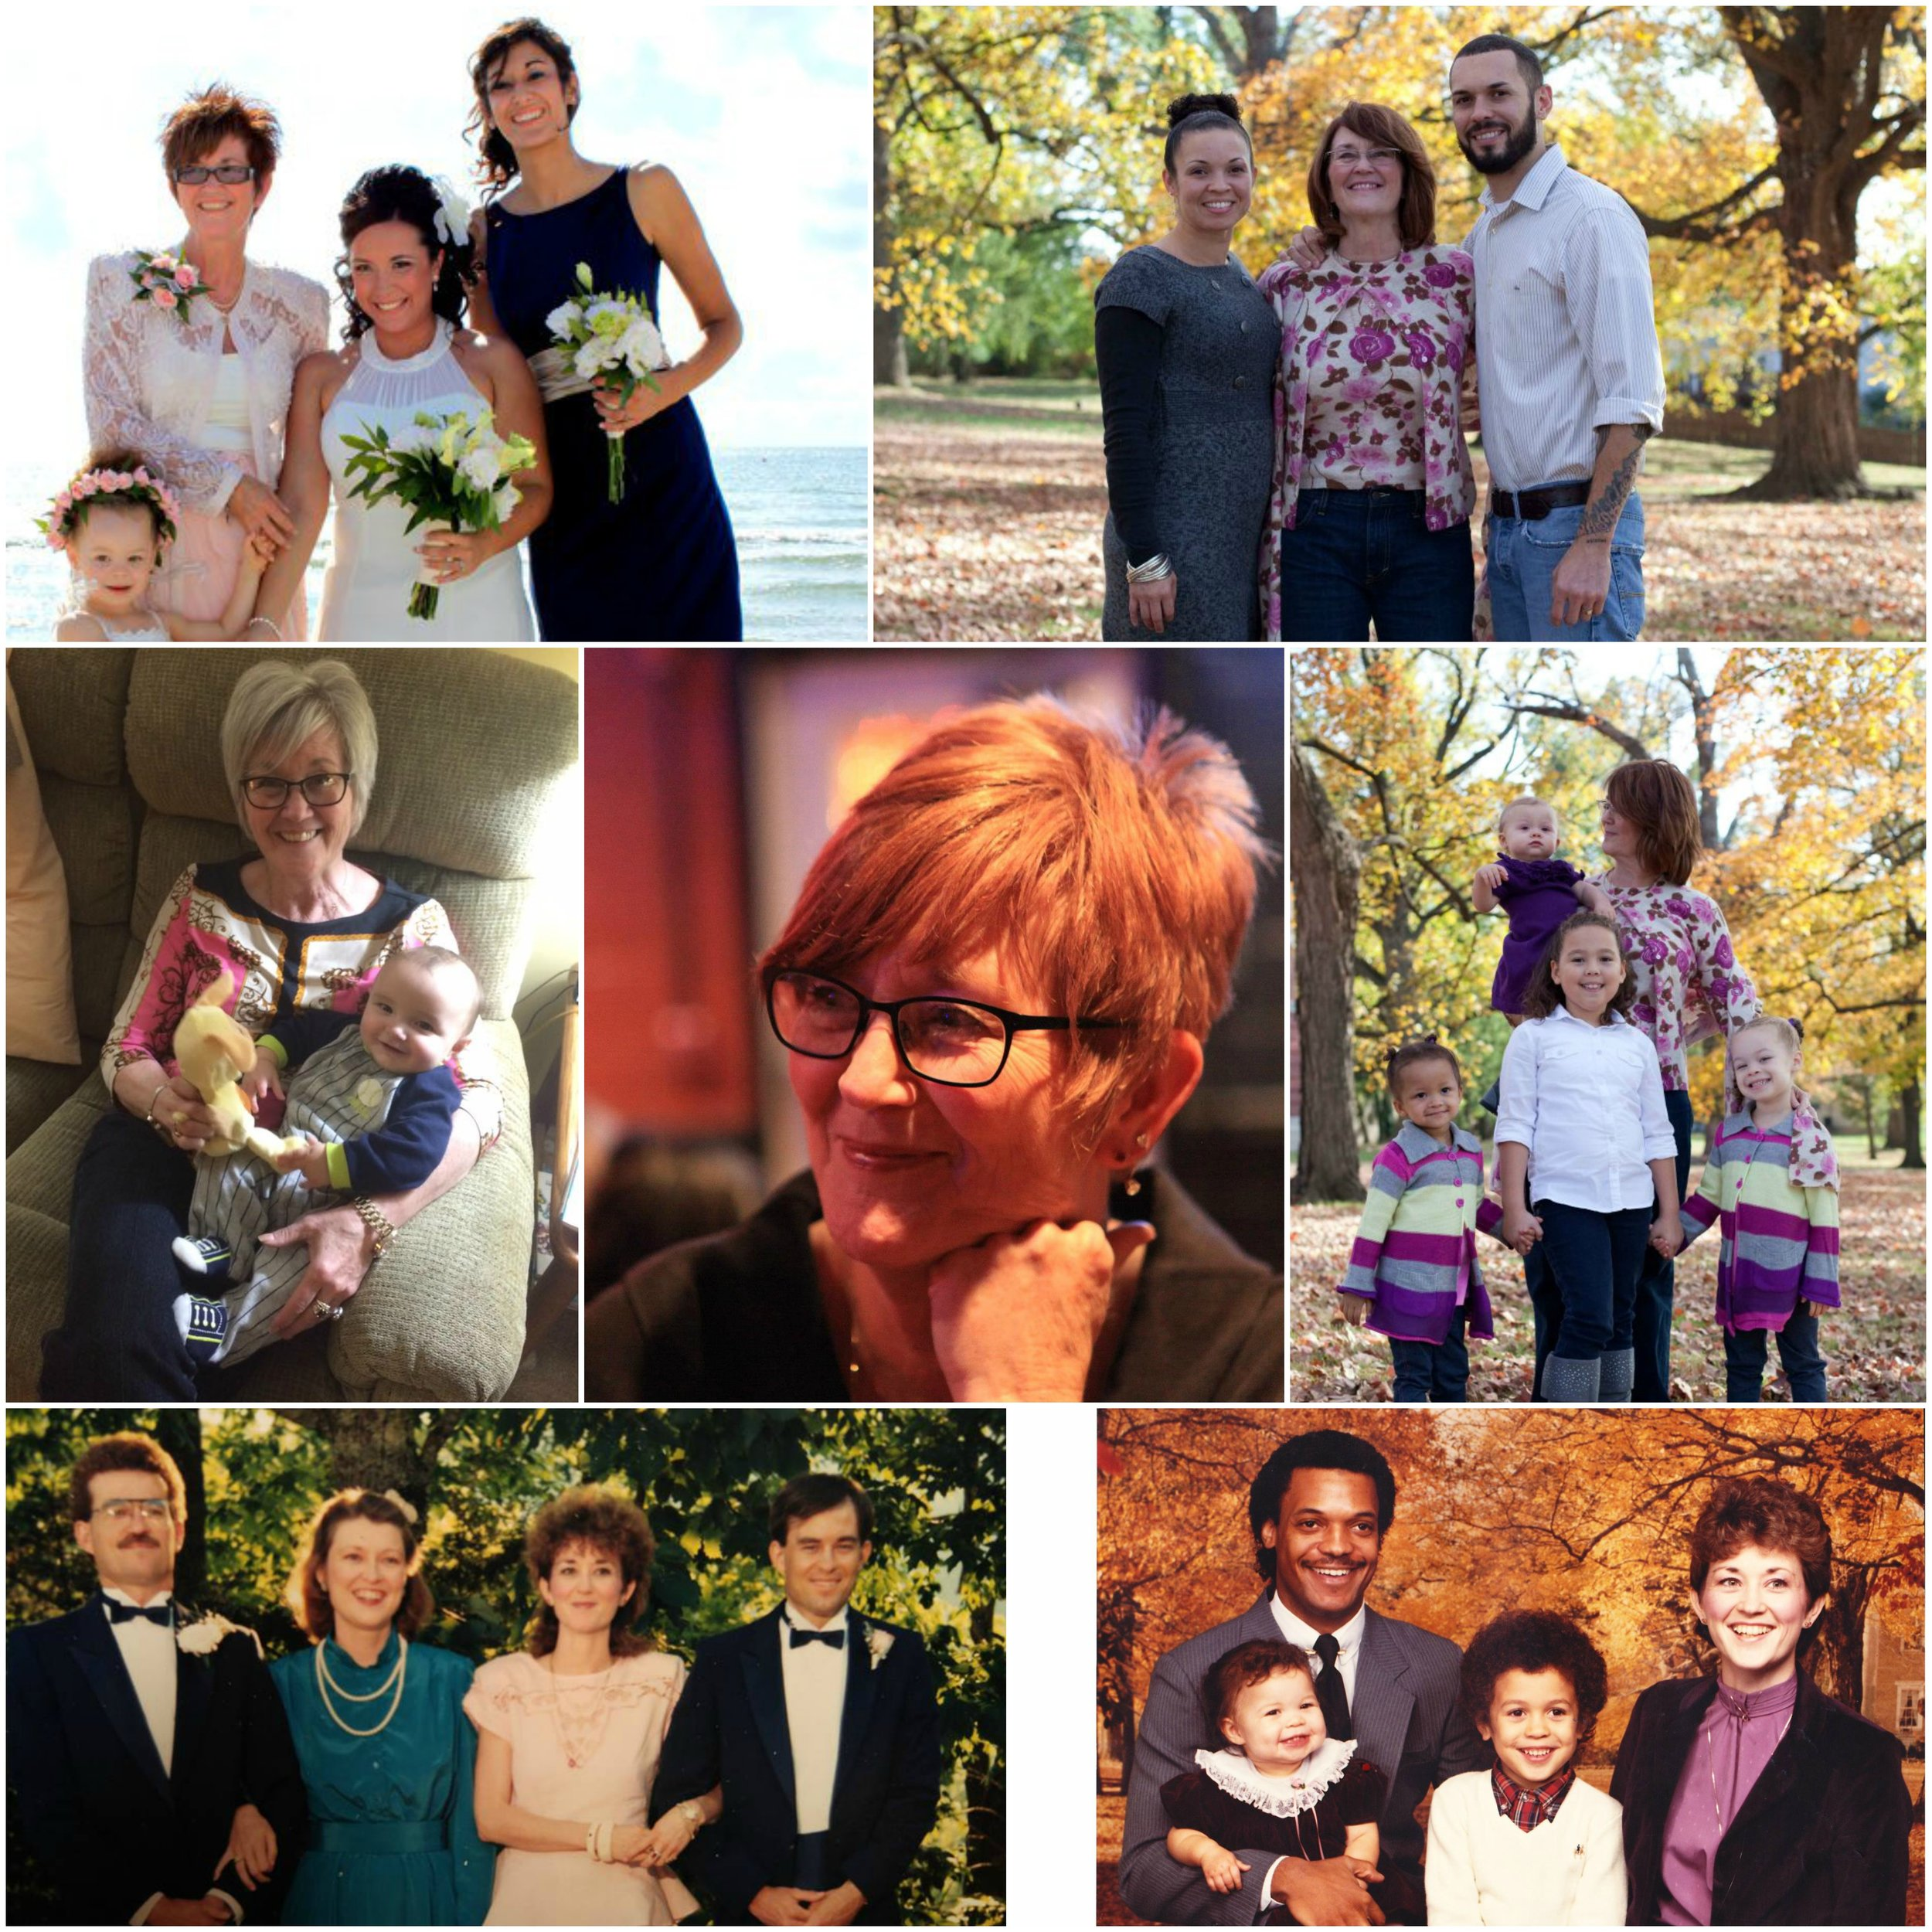 I found so many great pictures of Aunt Michelle's style through the years, I couldn't pick just one. I had to squeeze them all in with a collage!